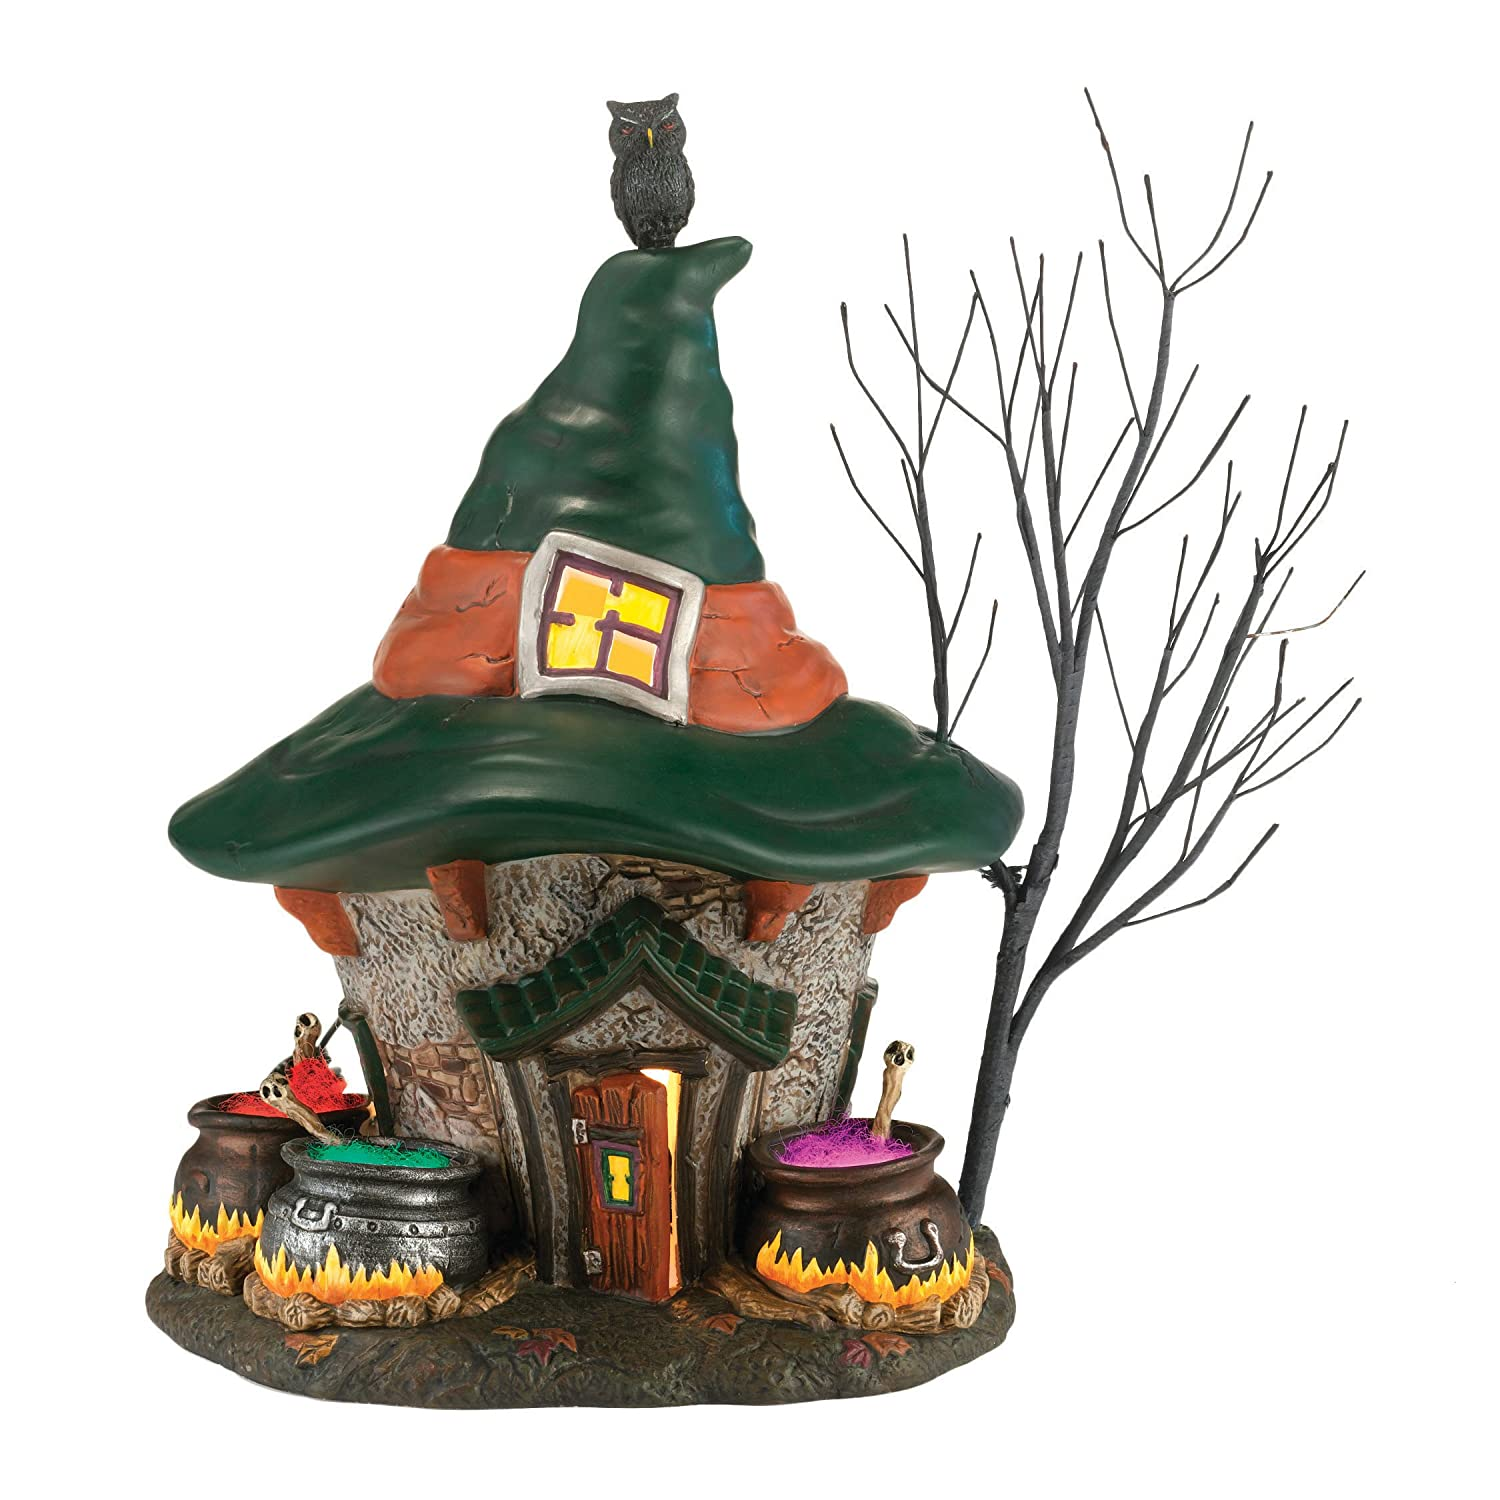 Department 56 Snow Village Halloween Three Witches Cauldron Haunt Lit House, 8.7 inch 4030758